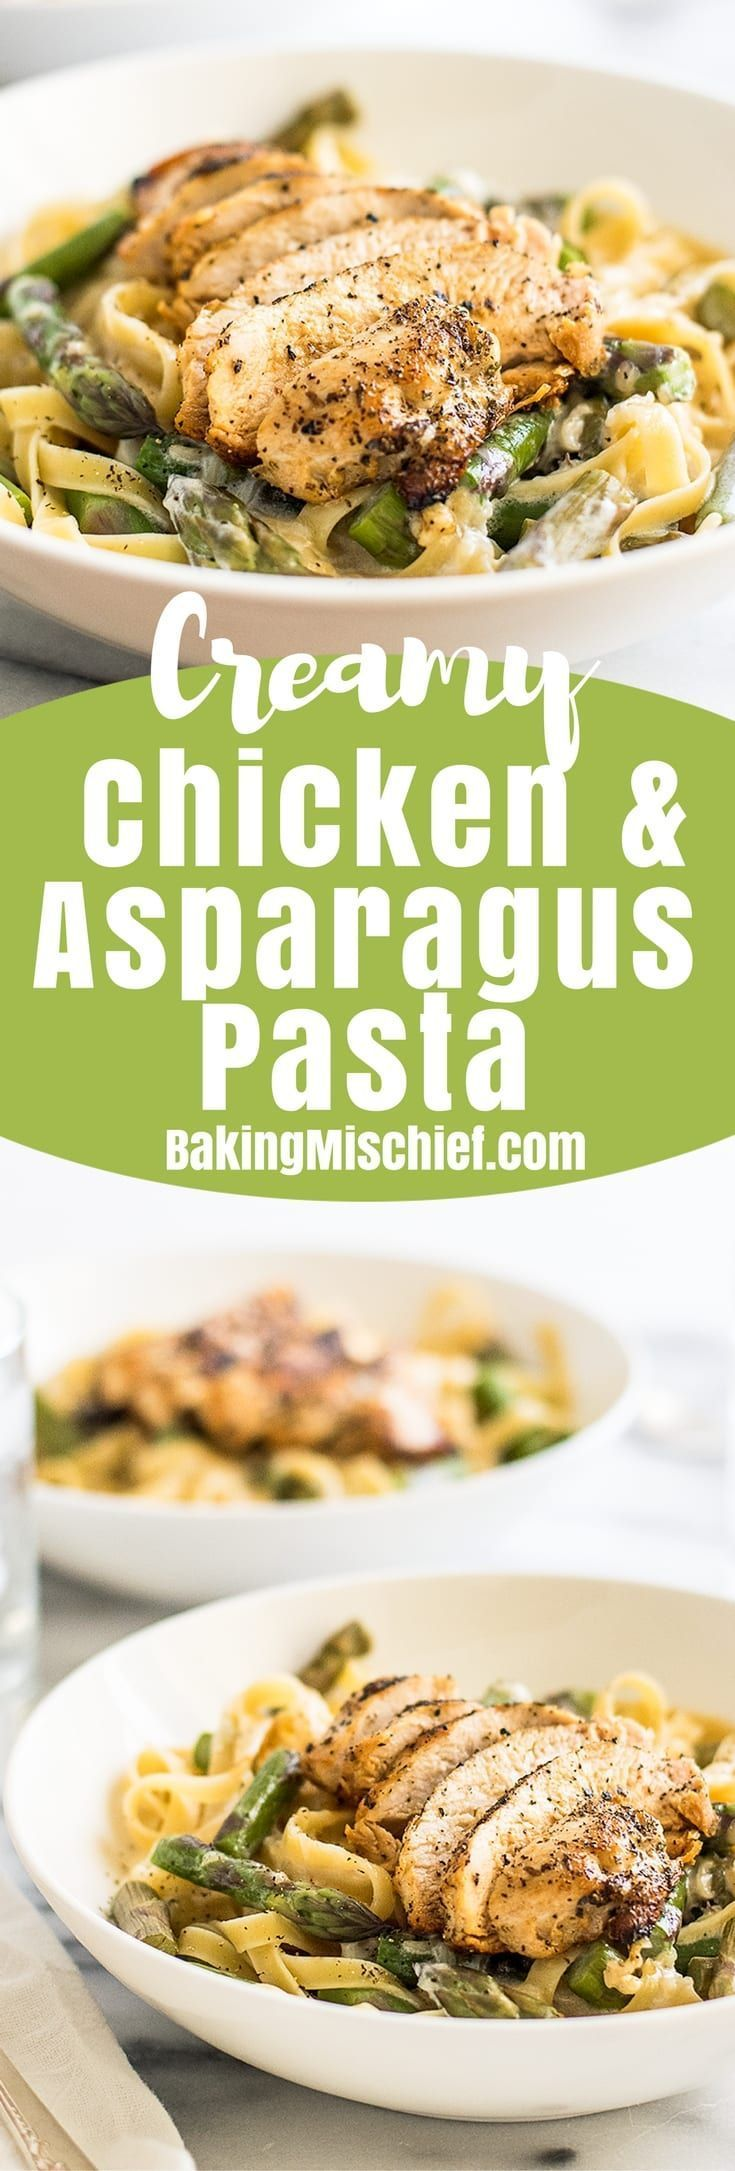 This easy Creamy Chicken and Asparagus Pasta is quick and simple to make and perfect for nights when you need a cheesy pasta fix!